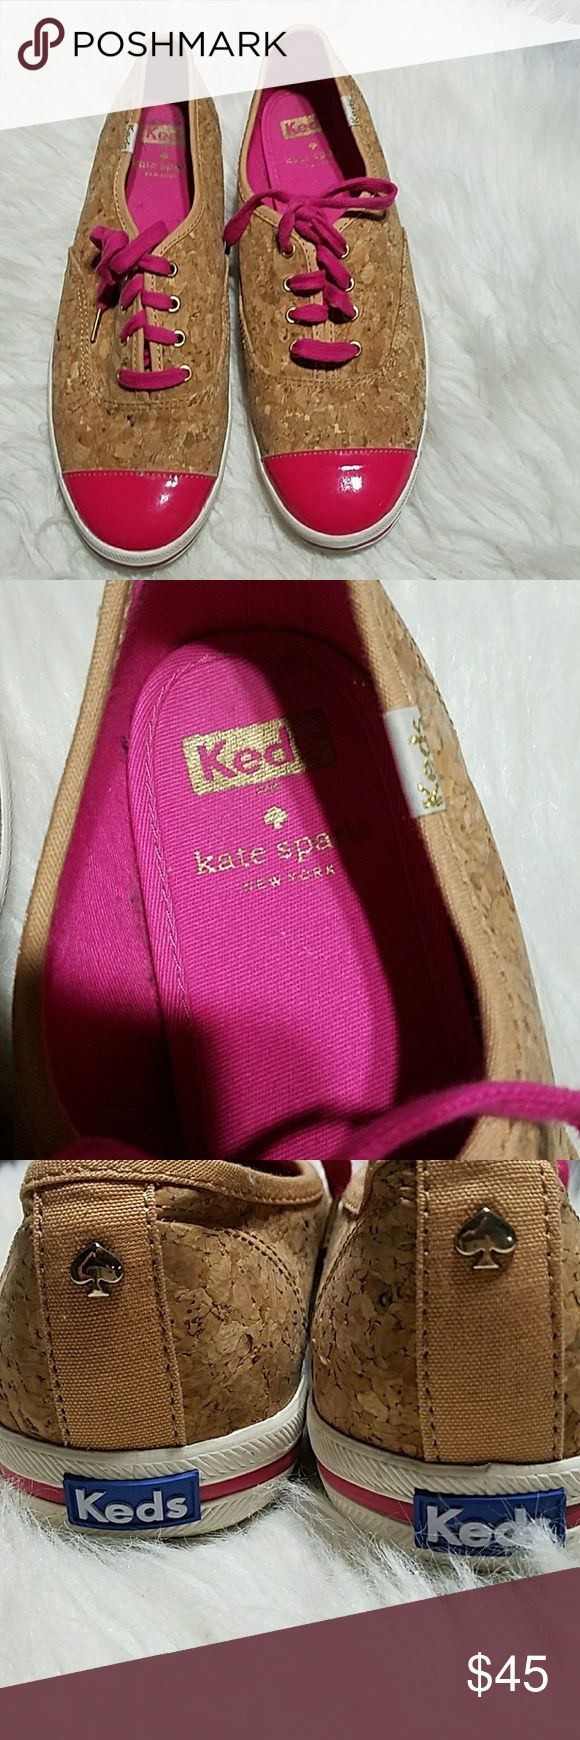 Limited Edition Kate Spade Keds Kate Spade Keds,Super cute Cork Style w/ hot pink Toes. Guc Keds Shoes Sneakers